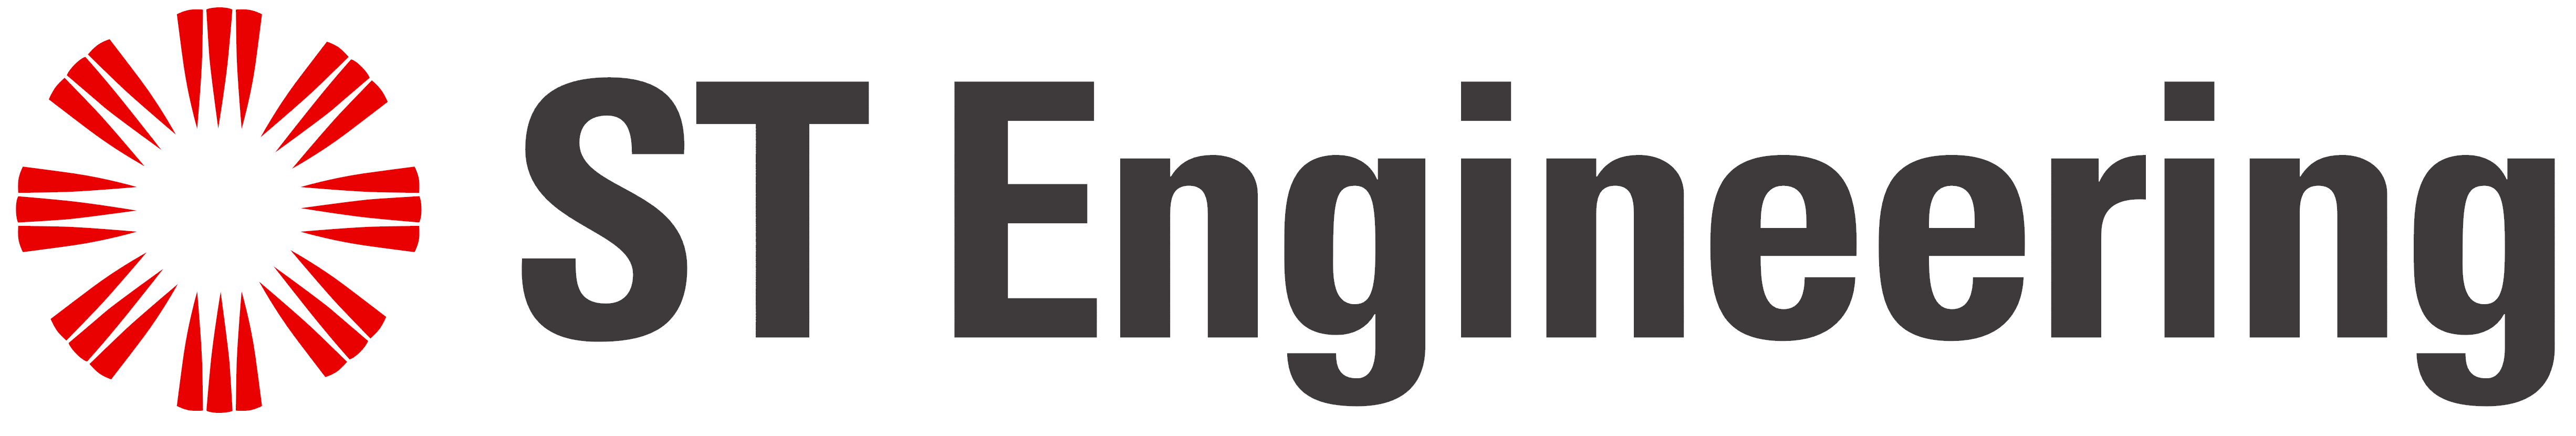 Image Result For St Engineering